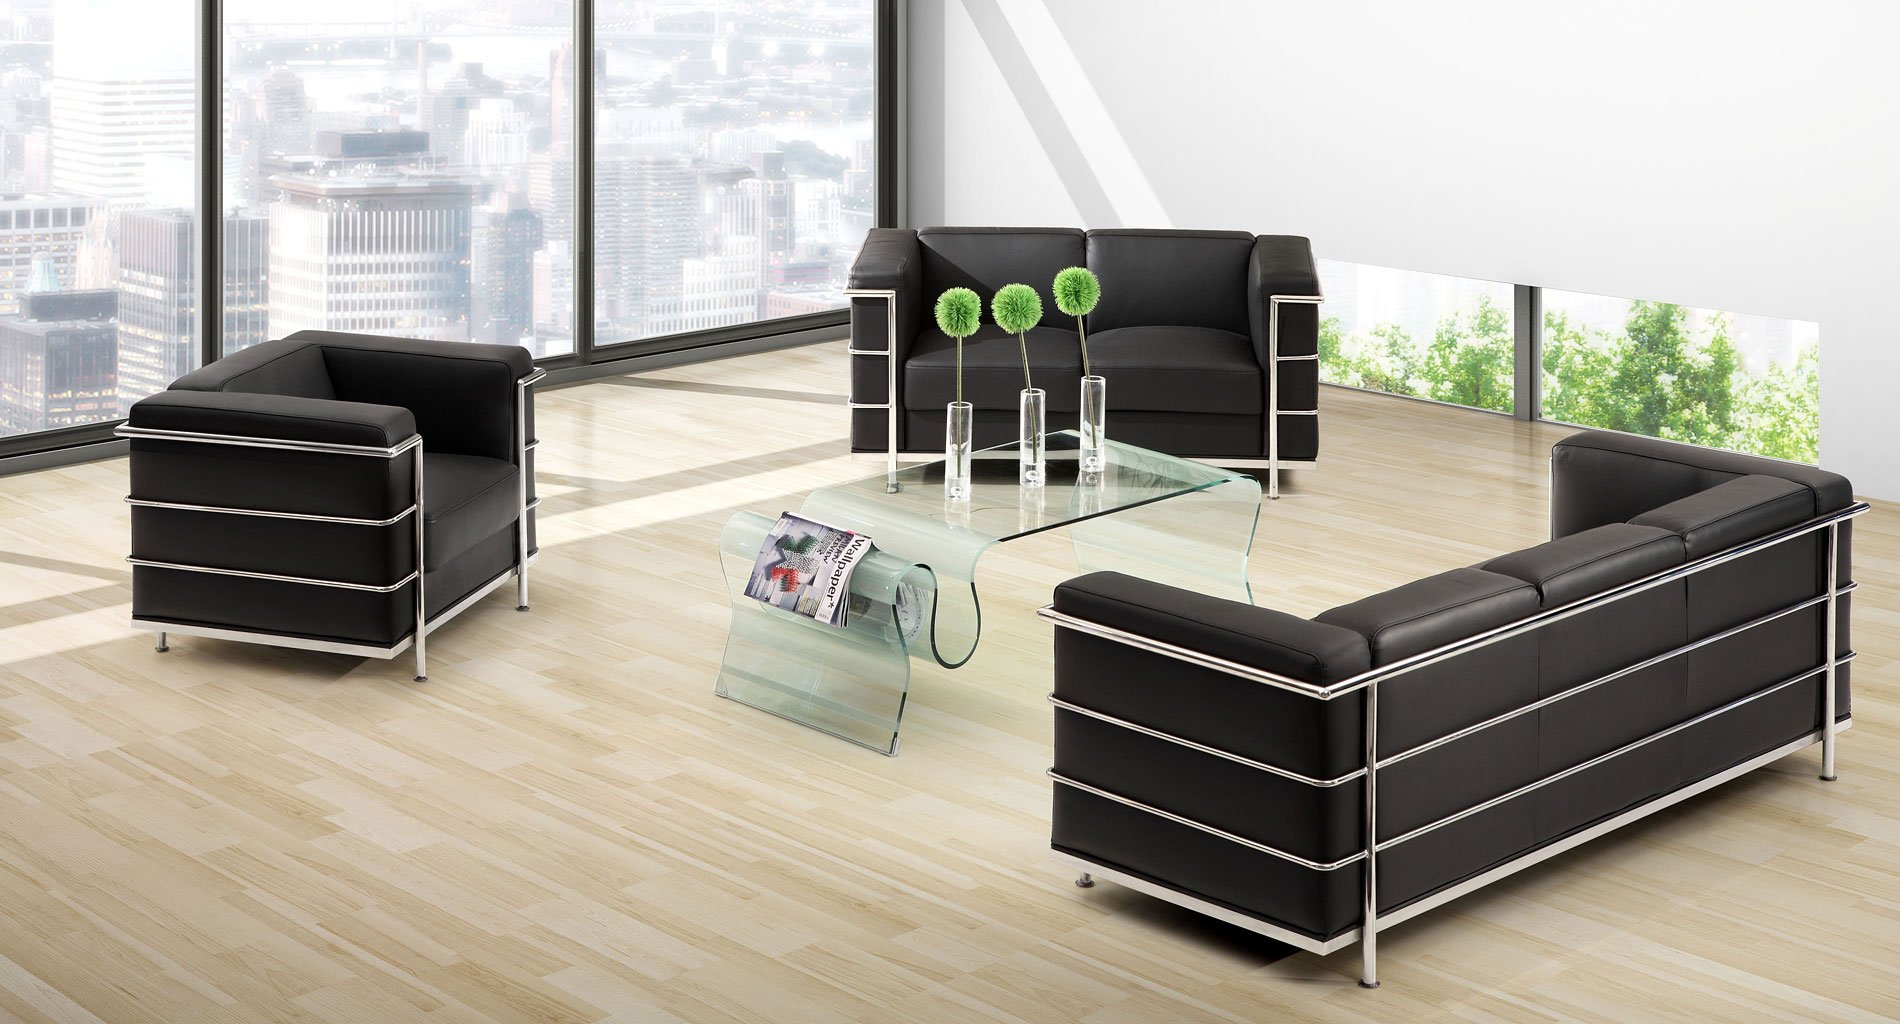 Fortress Leather Living Room Set (Black) Zuo Modern